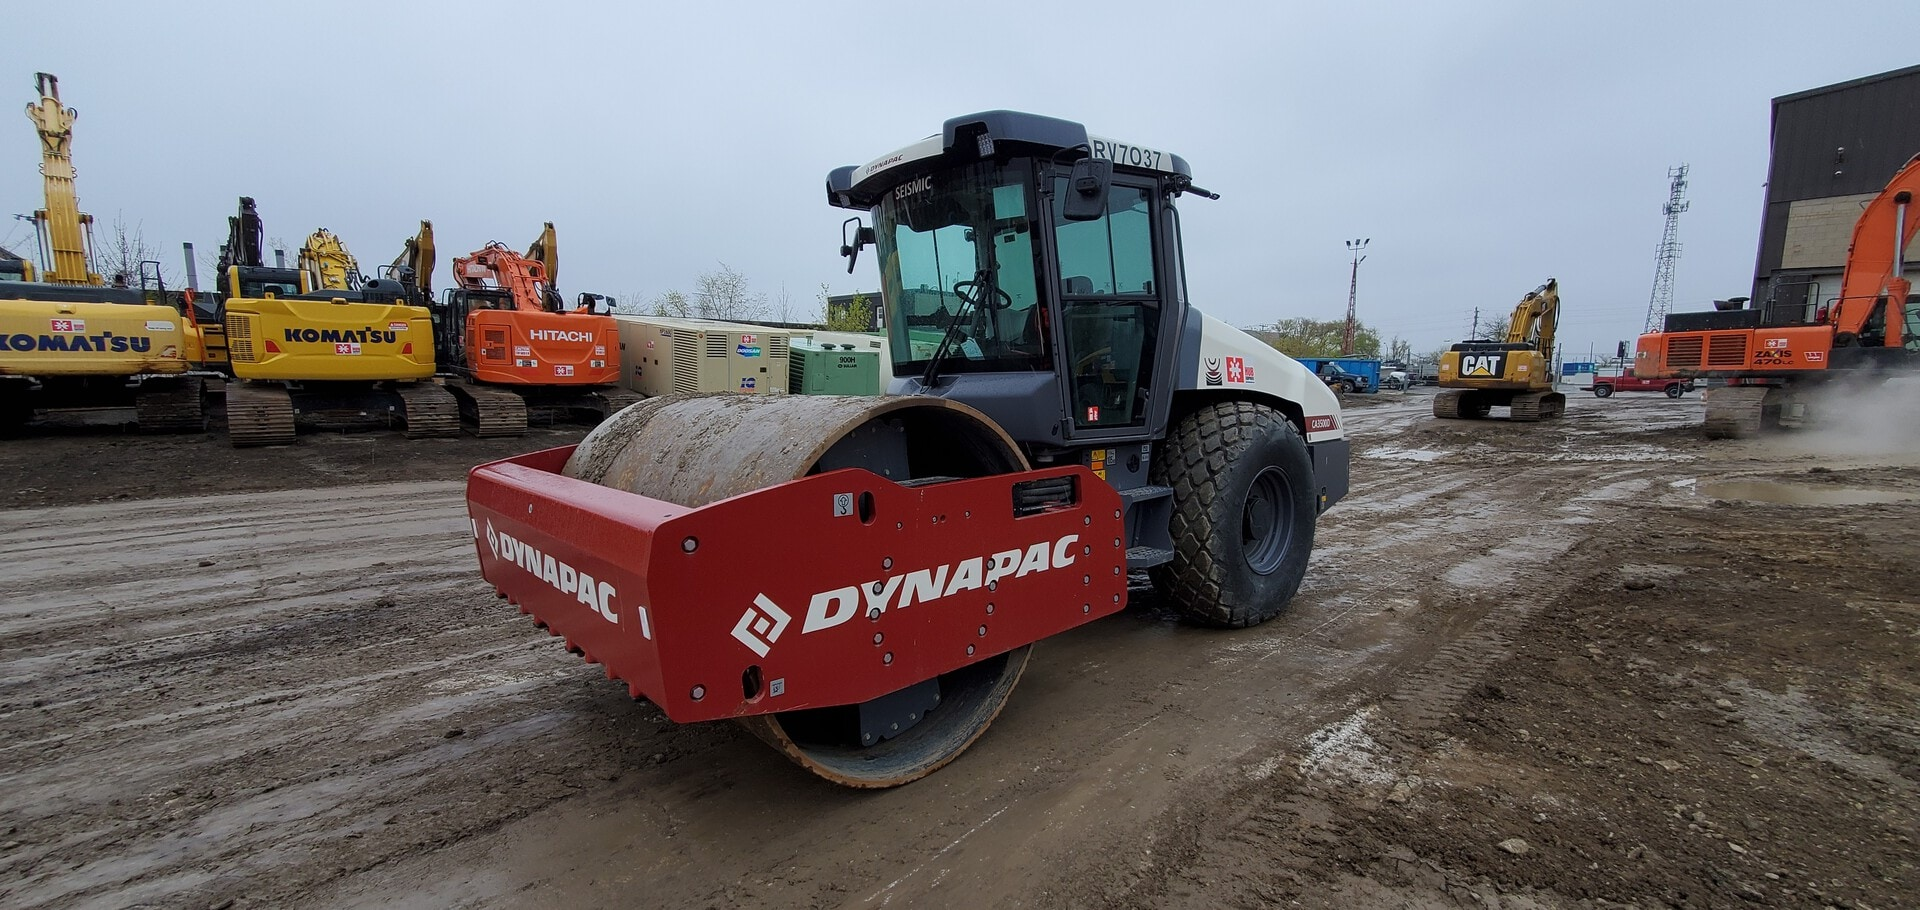 Used, 2019, Dynapac, CA3500D, Compaction Roller